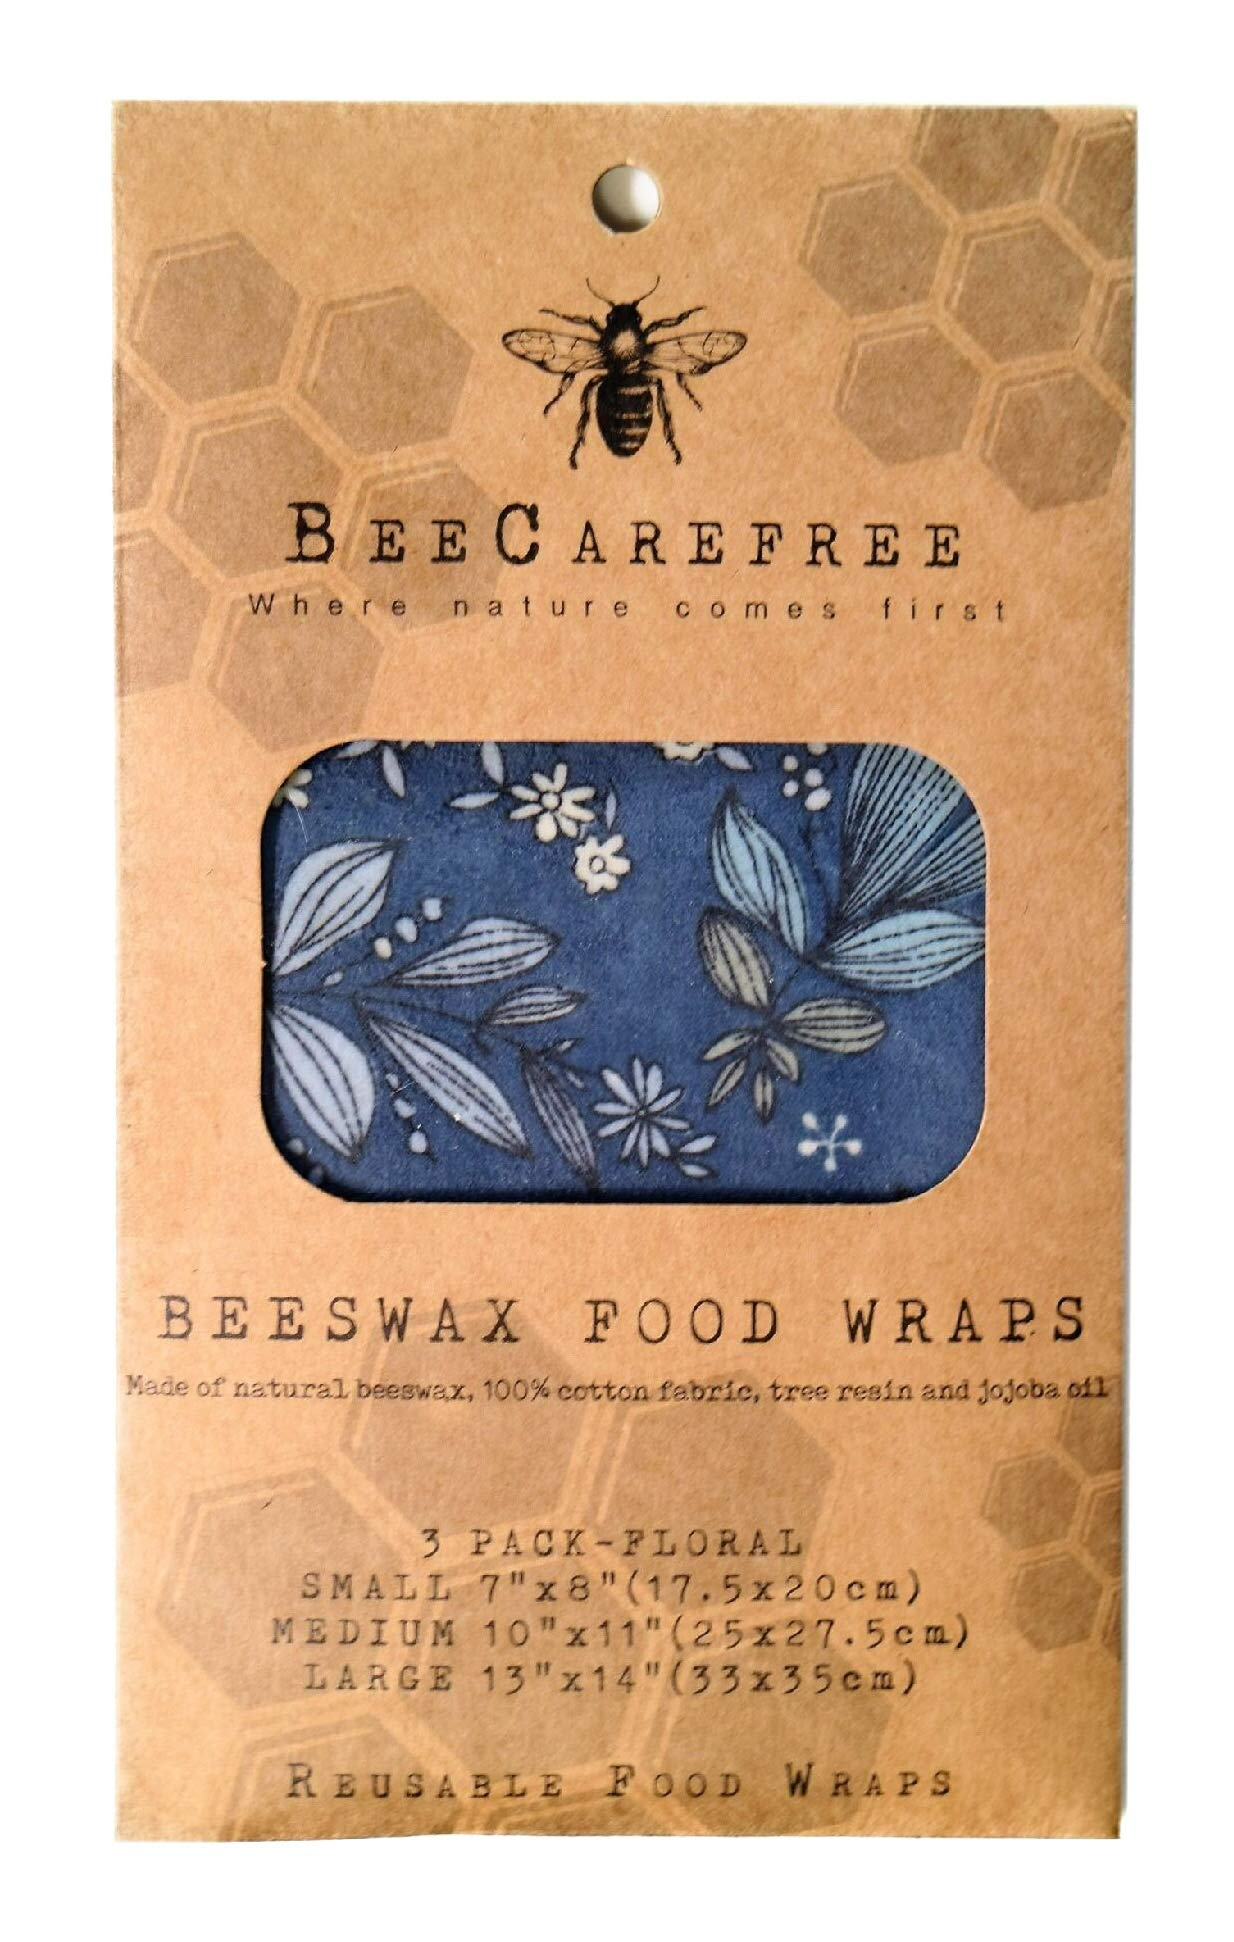 Bee Carefree - Reusable Beeswax Food Wraps - Wrappers/Papers- Small,Medium,Large Set- Floral Sheets Variety Pack-Natural/Eco Friendly-Cover your Bread or Sandwich-Replaces Cling Wrap, Paper Bags or Wr